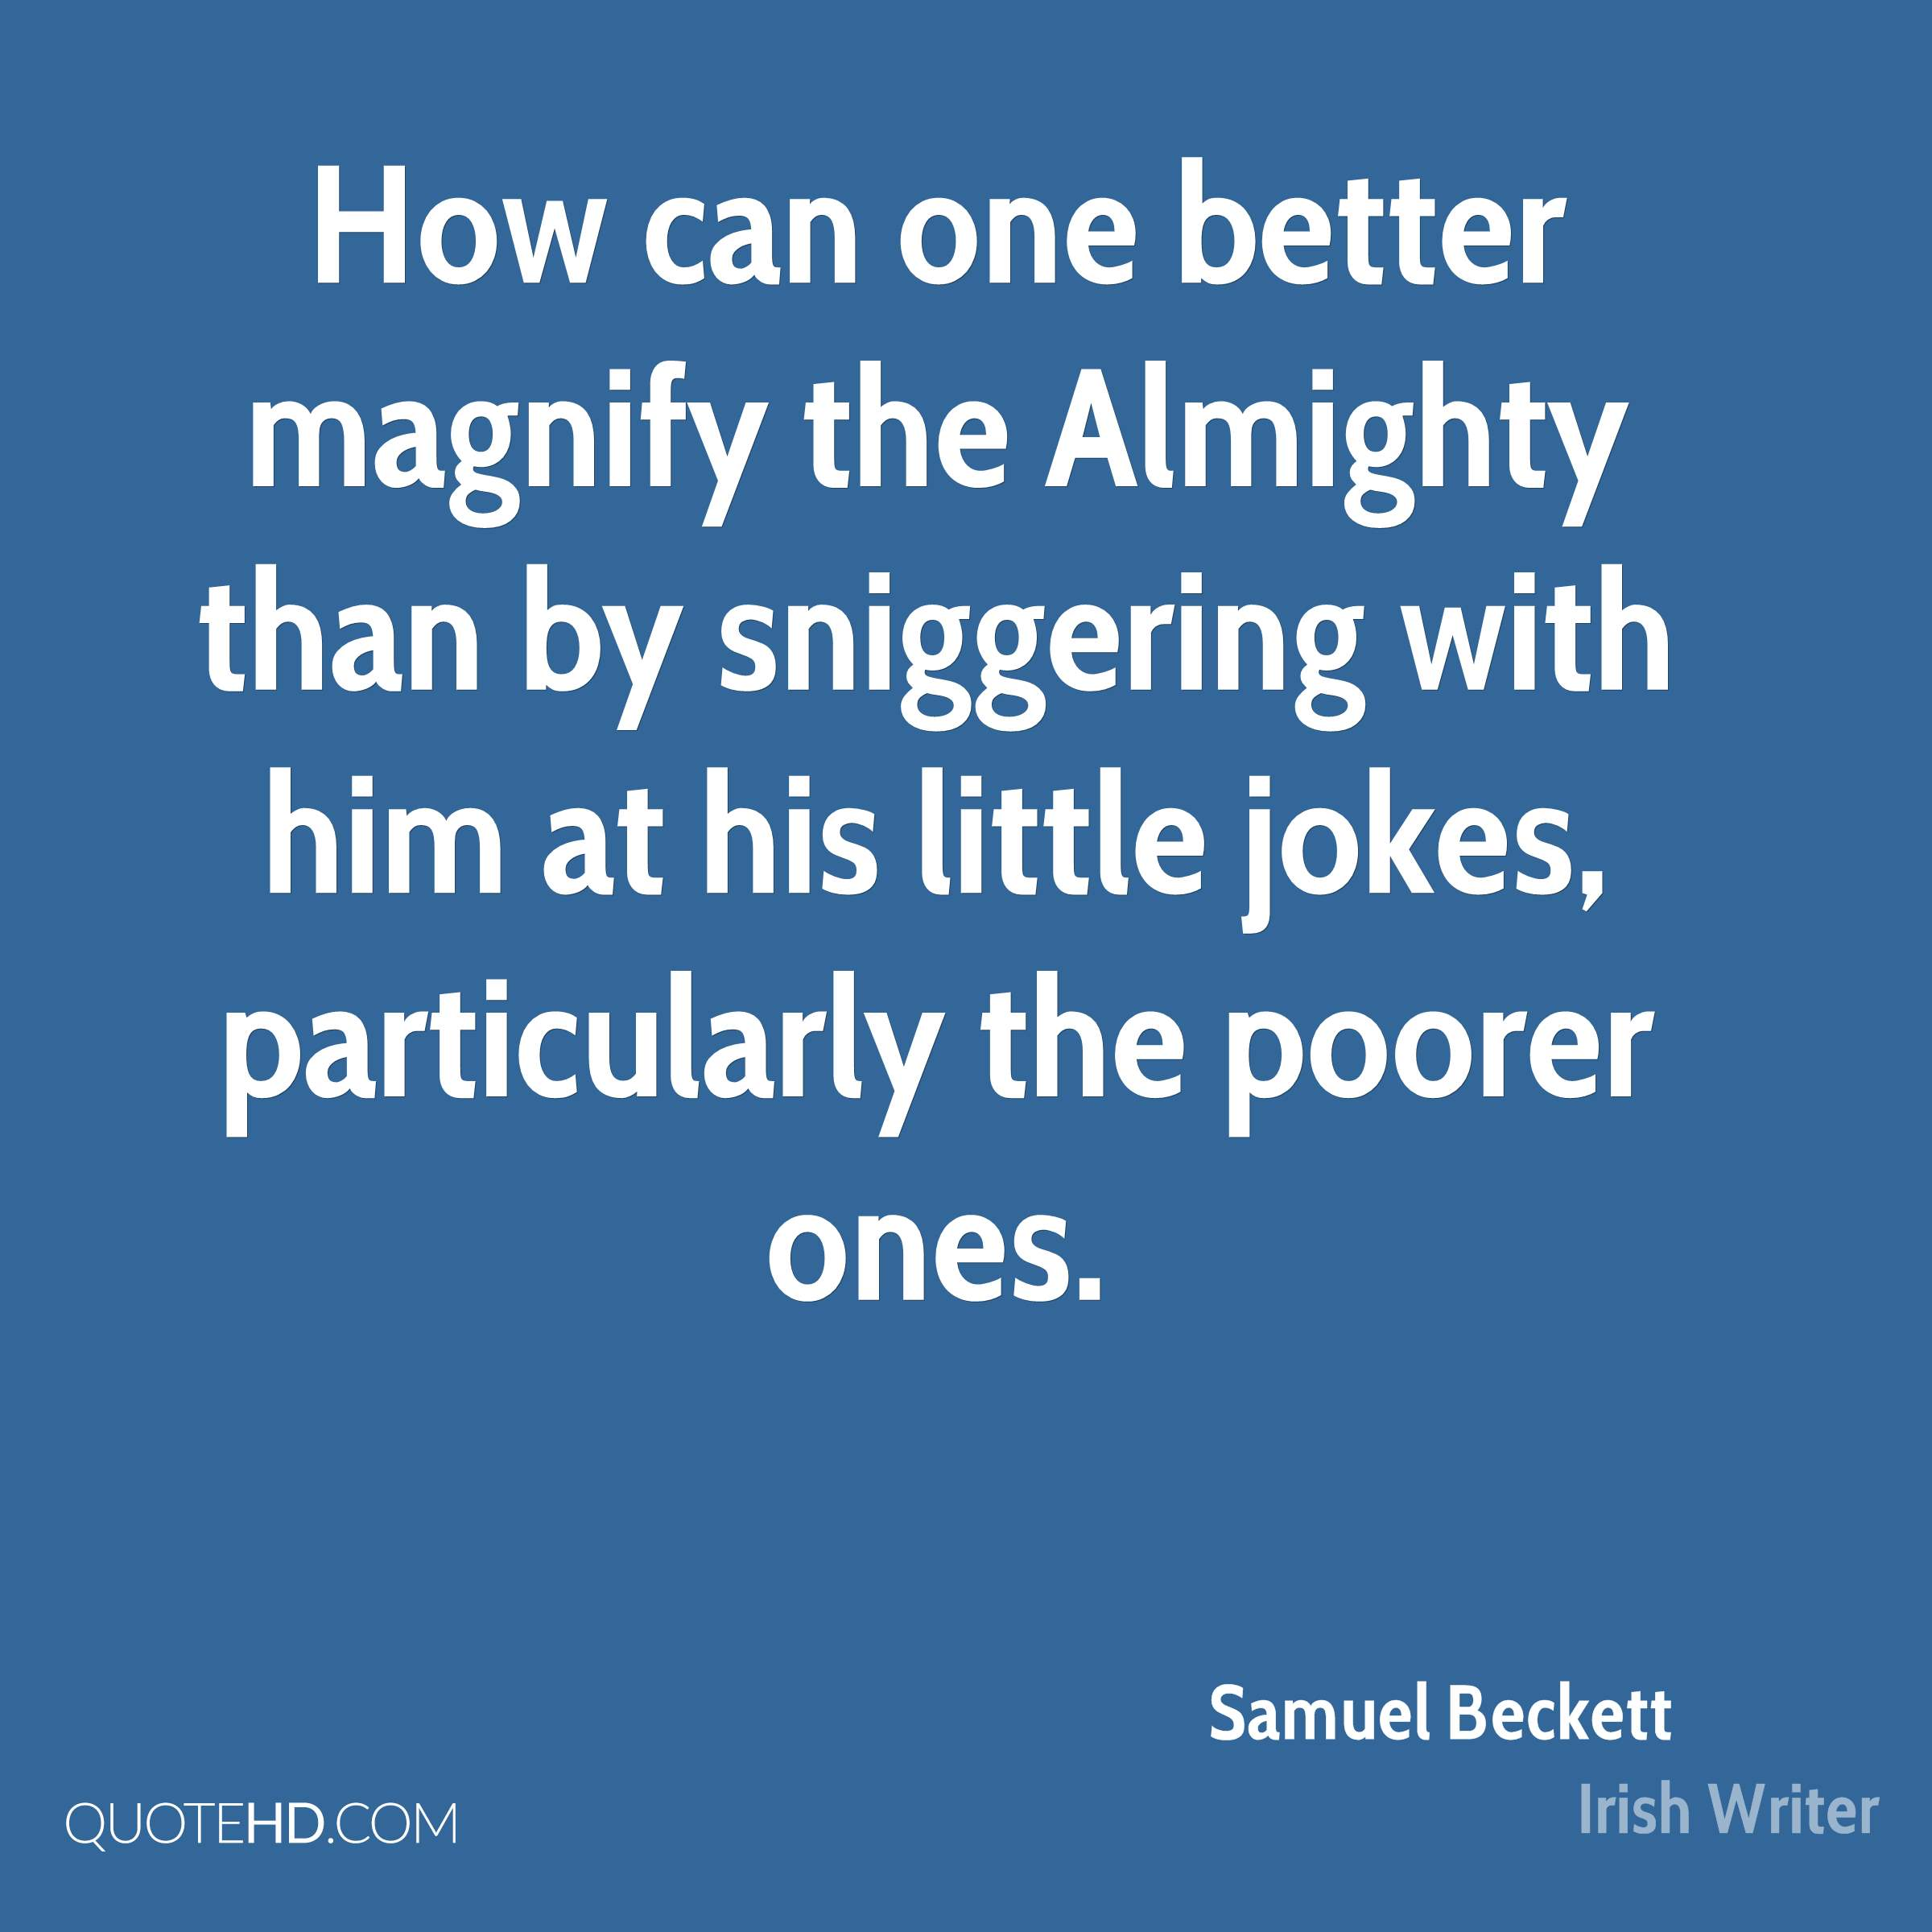 How can one better magnify the Almighty than by sniggering with him at his little jokes, particularly the poorer ones.